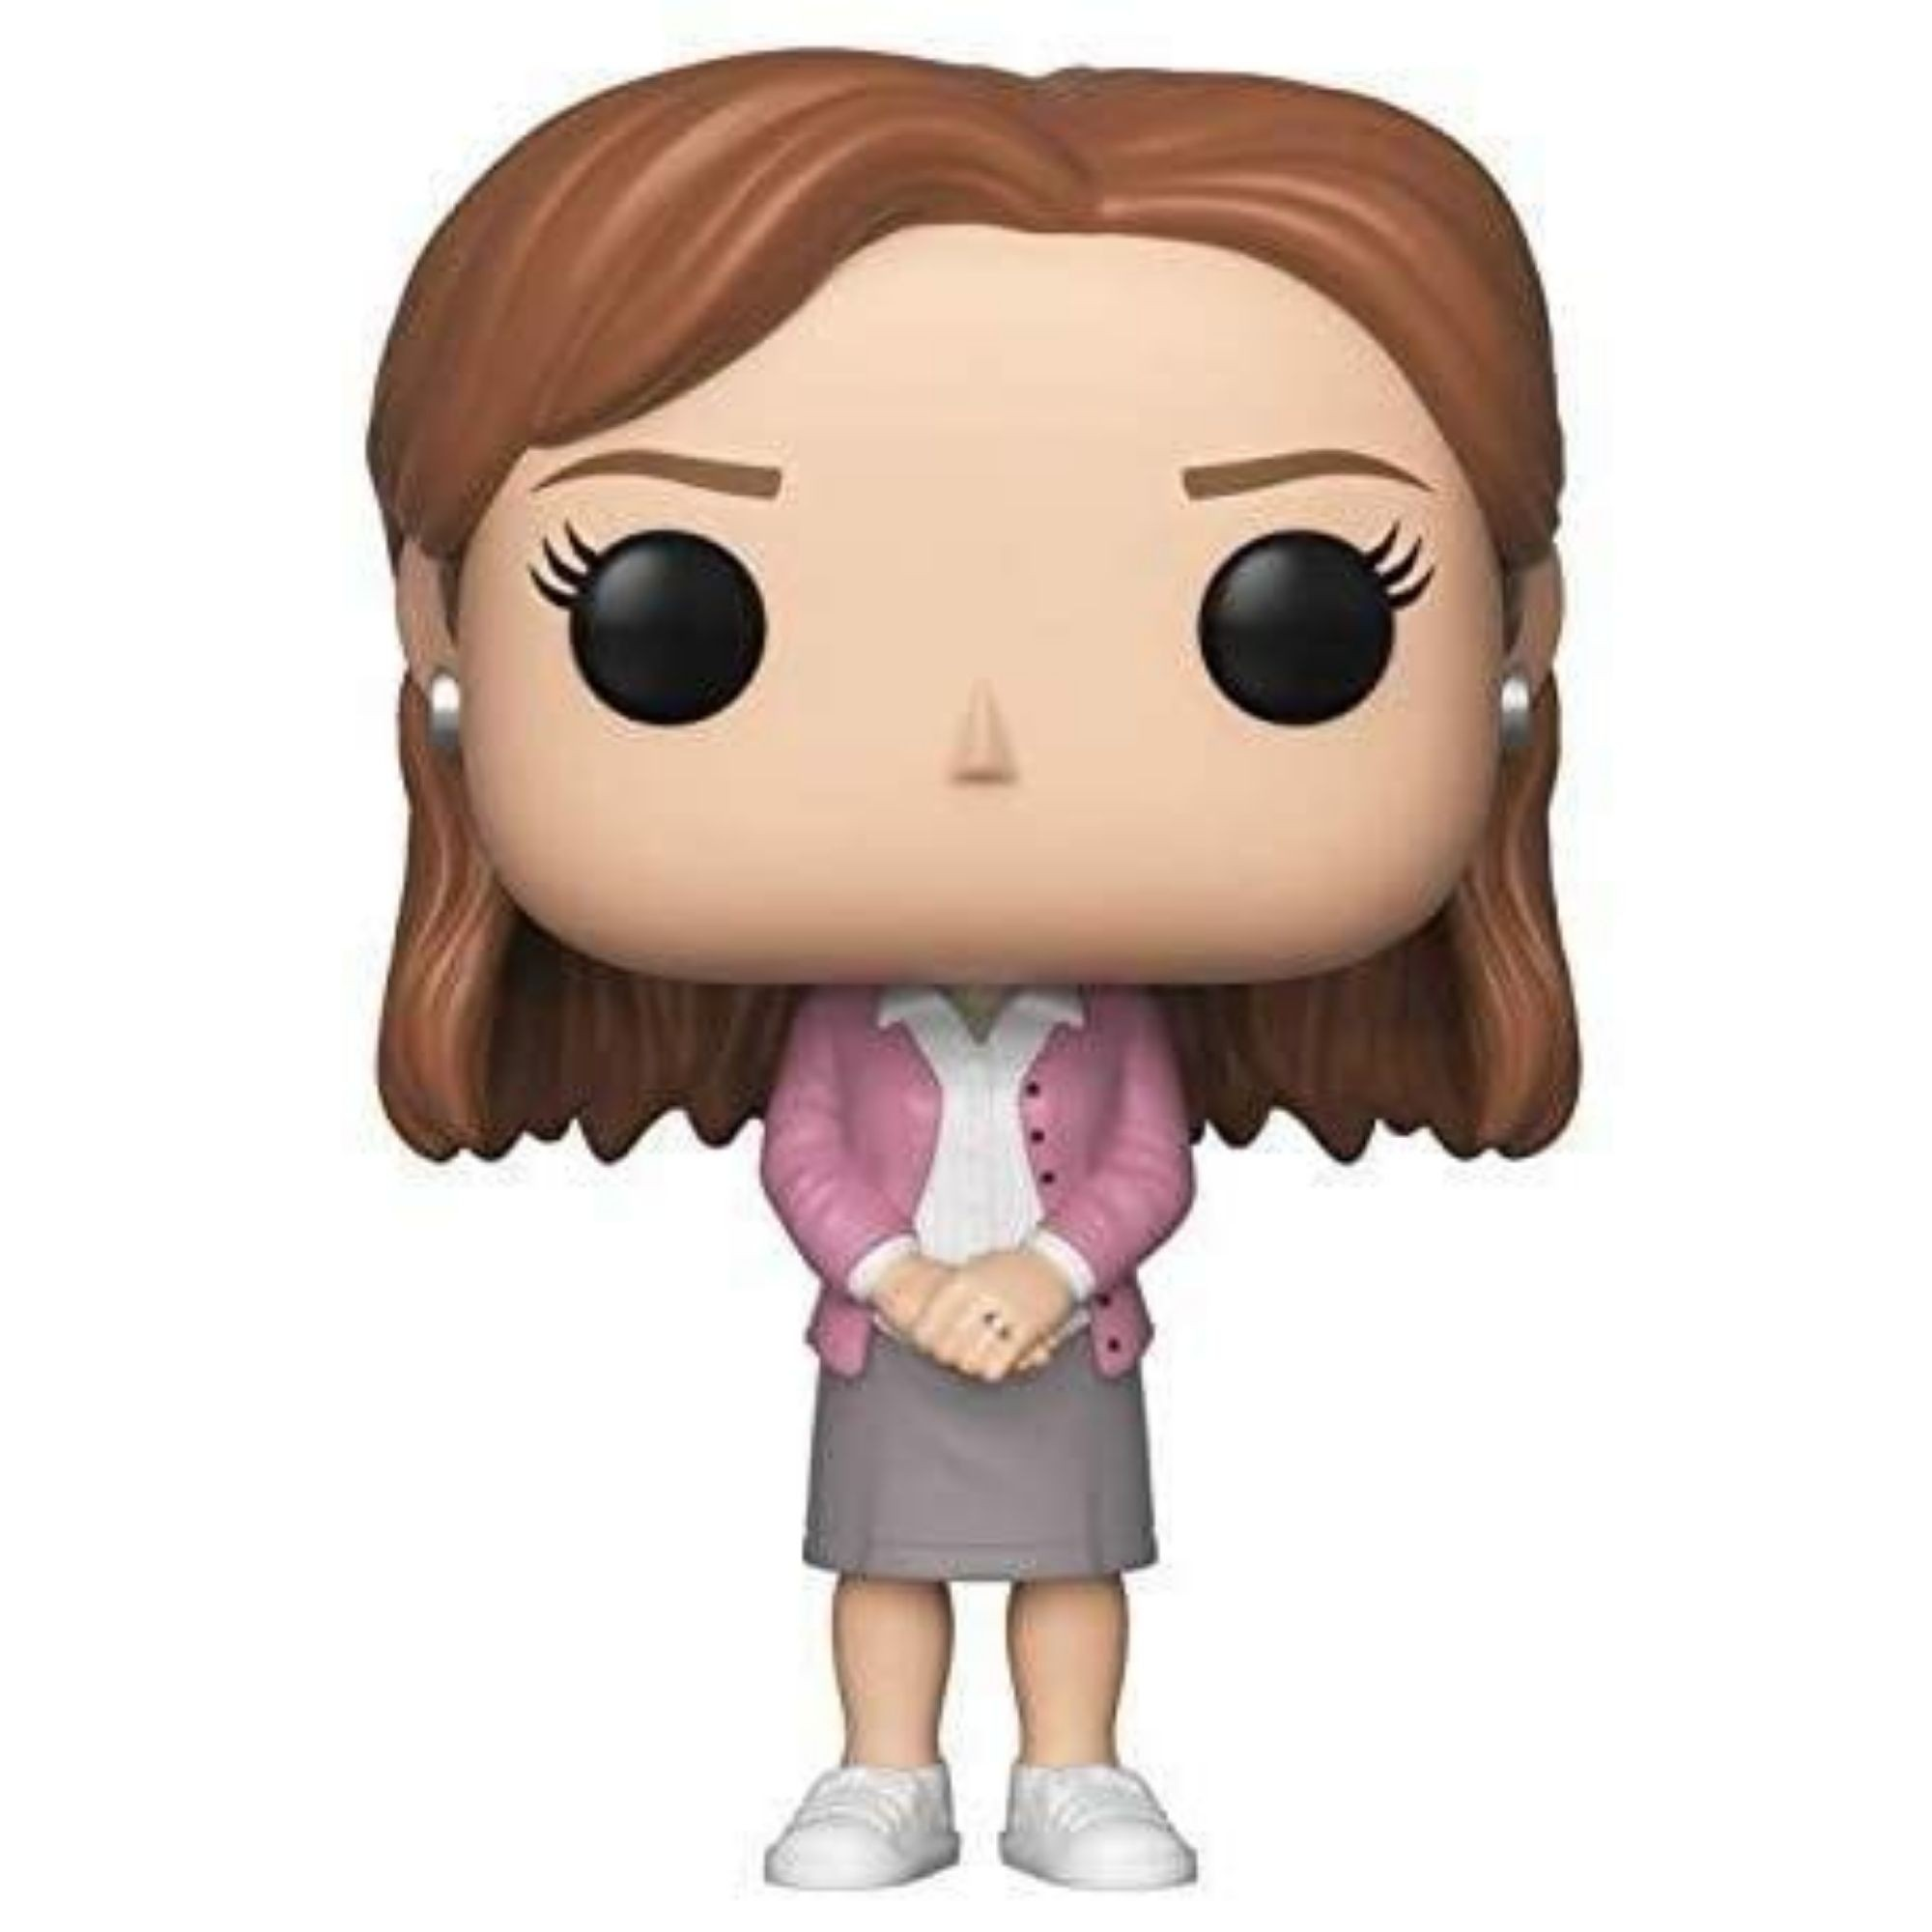 Funko Pop The Office Pam Beesly #872  - Game Land Brinquedos